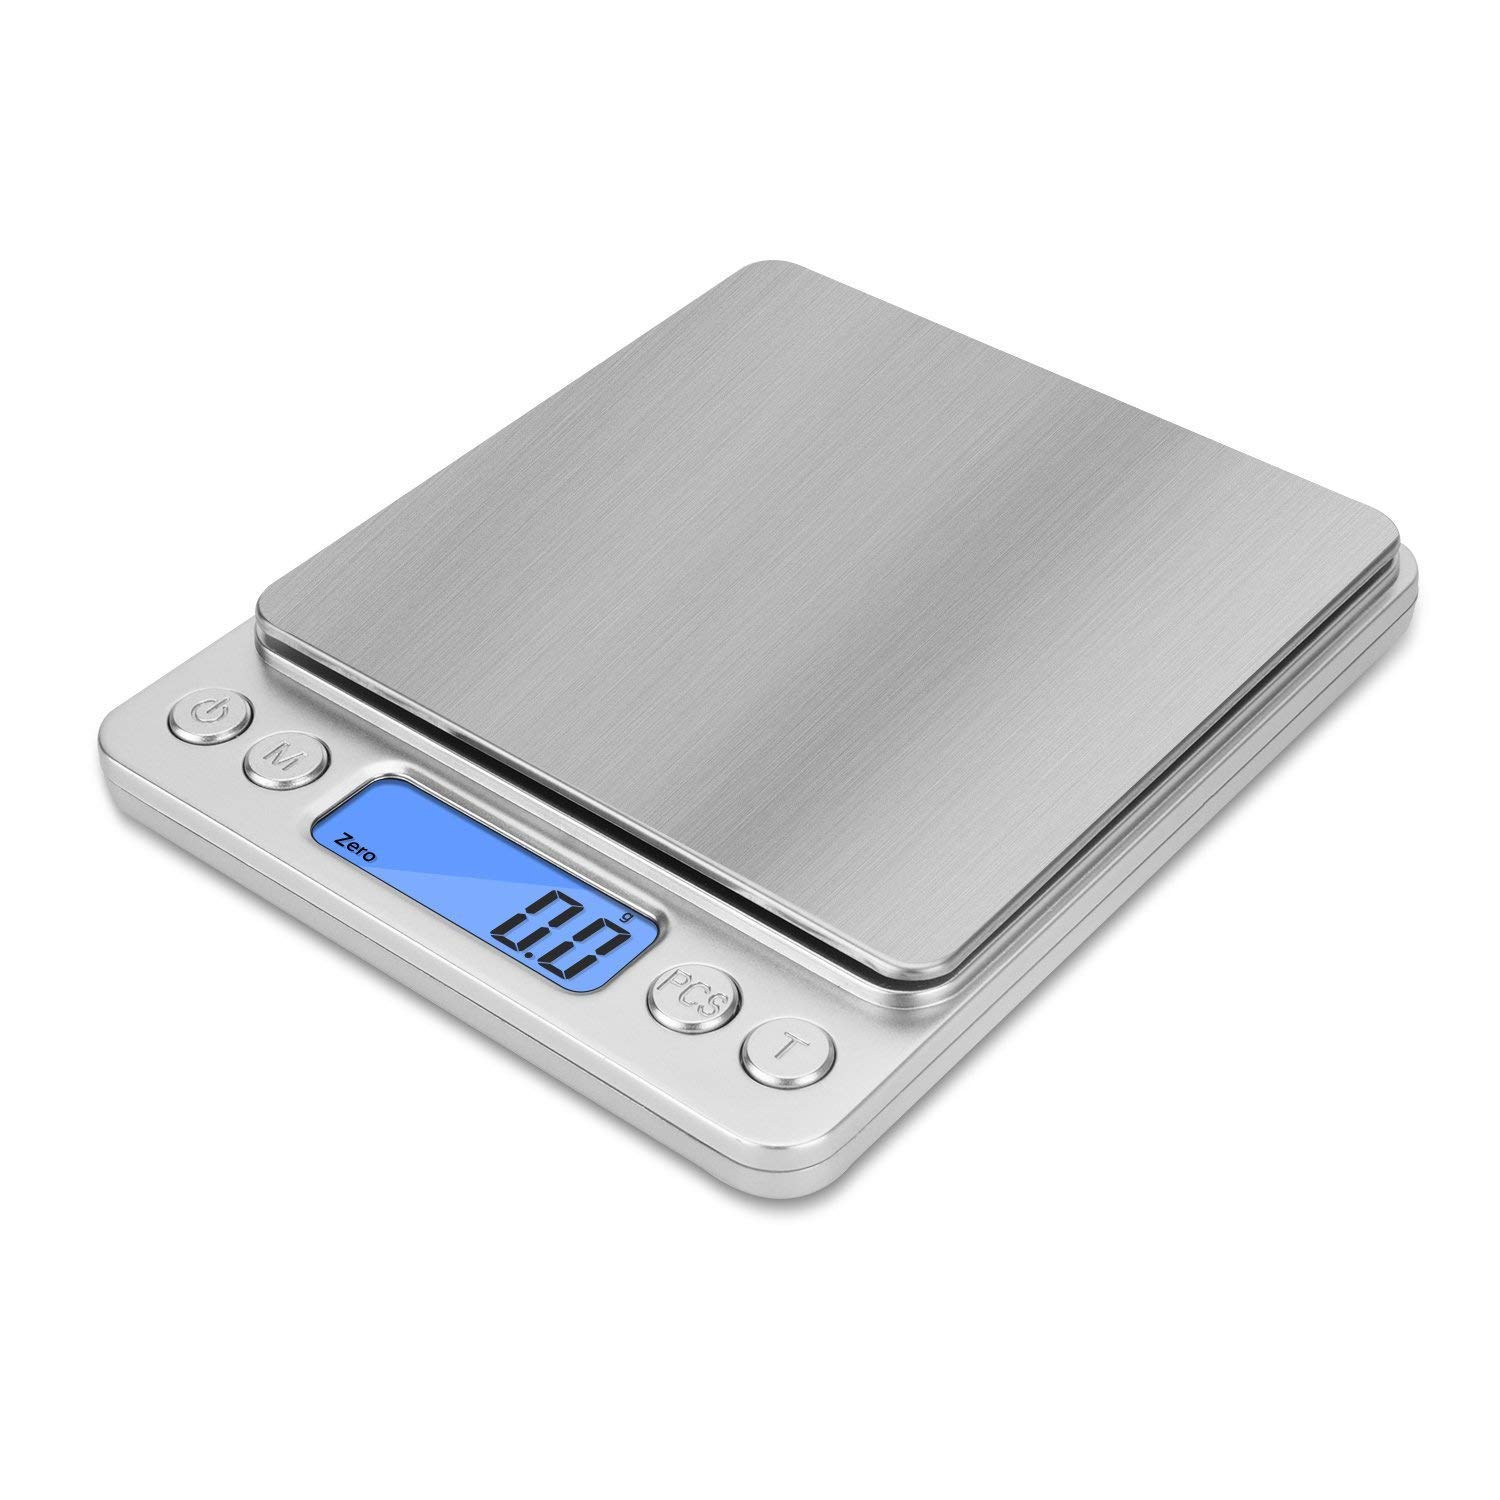 NEXT-SHINE P221 Gram Scale Digital Kitchen Series Scale 500 x 0.01g Multi-functionals for Cooking Baking Jewelry Weight Postal Parcel